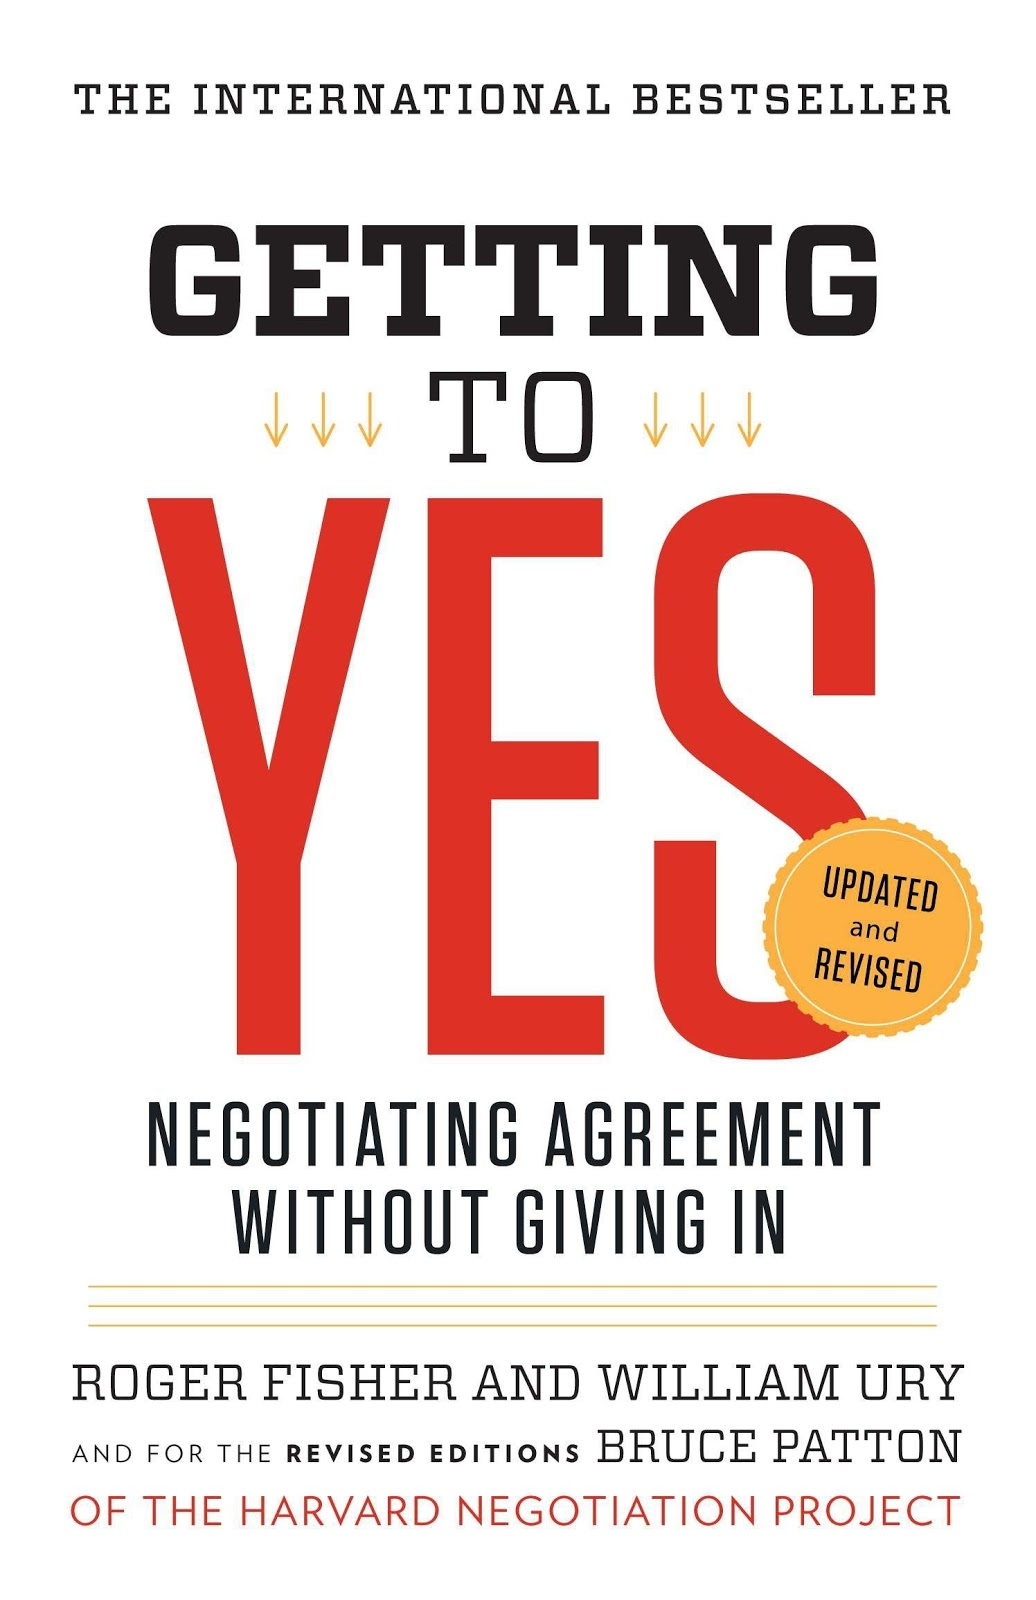 Best audio books for entrepreneurs #4: Getting to Yes